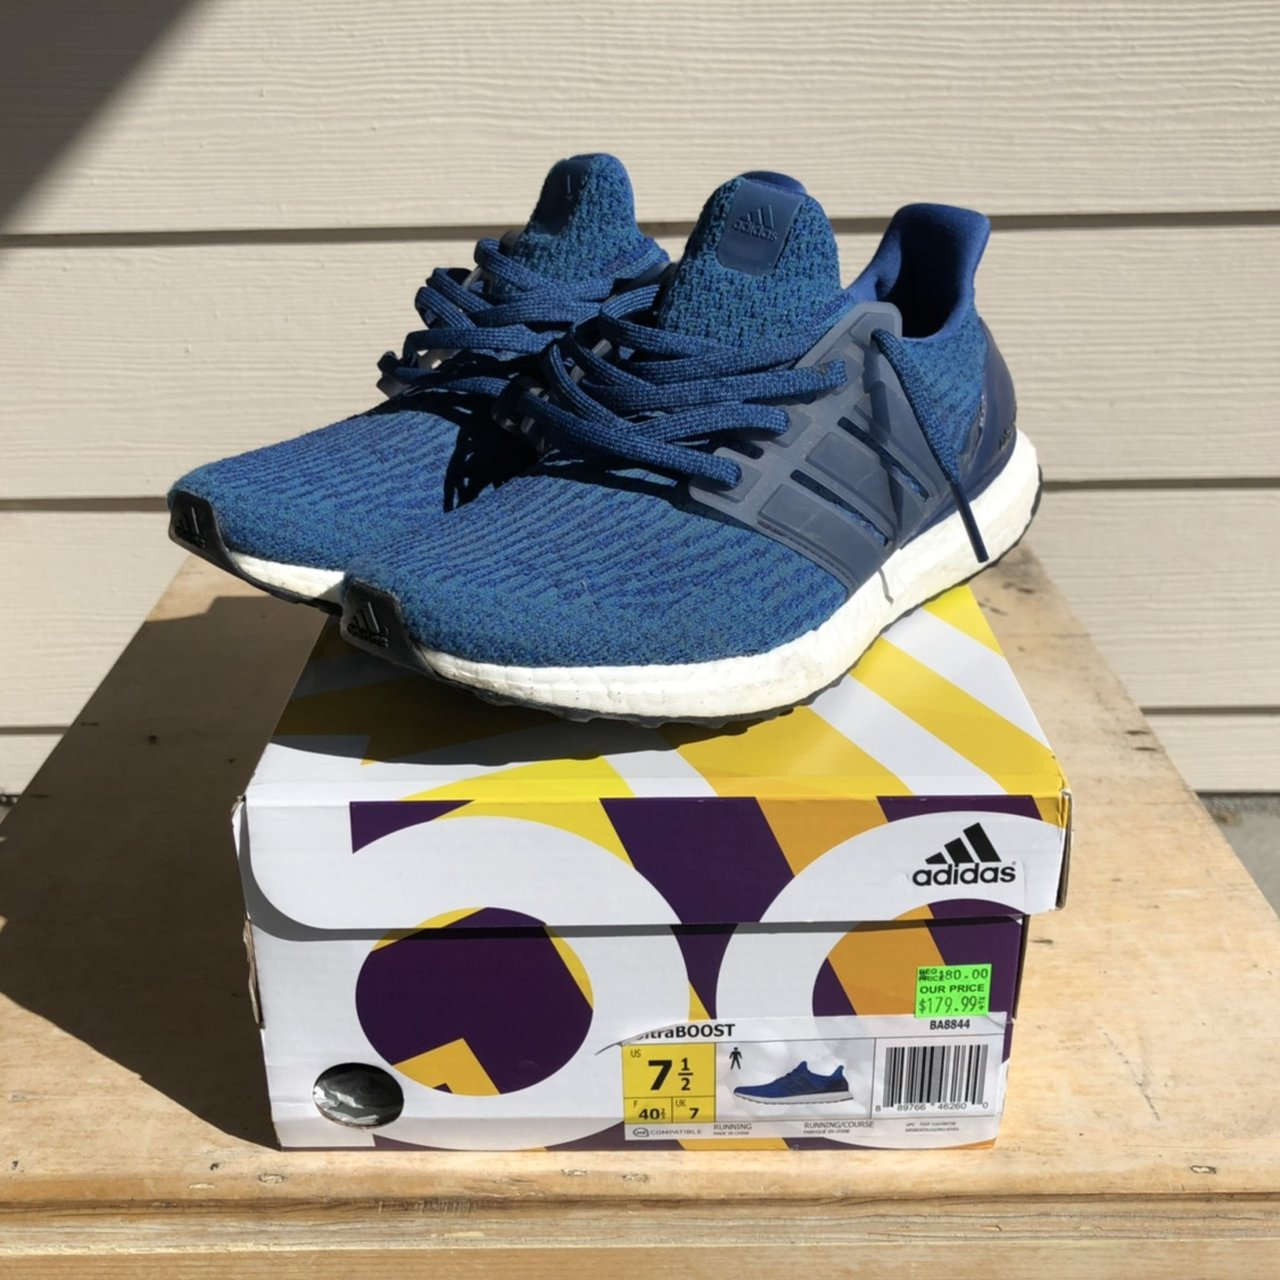 d84cd1c40  jessiedeguzman. last month. United States. PRE OWNED Adidas Ultra Boost 3.0  Mystery Blue in size ...